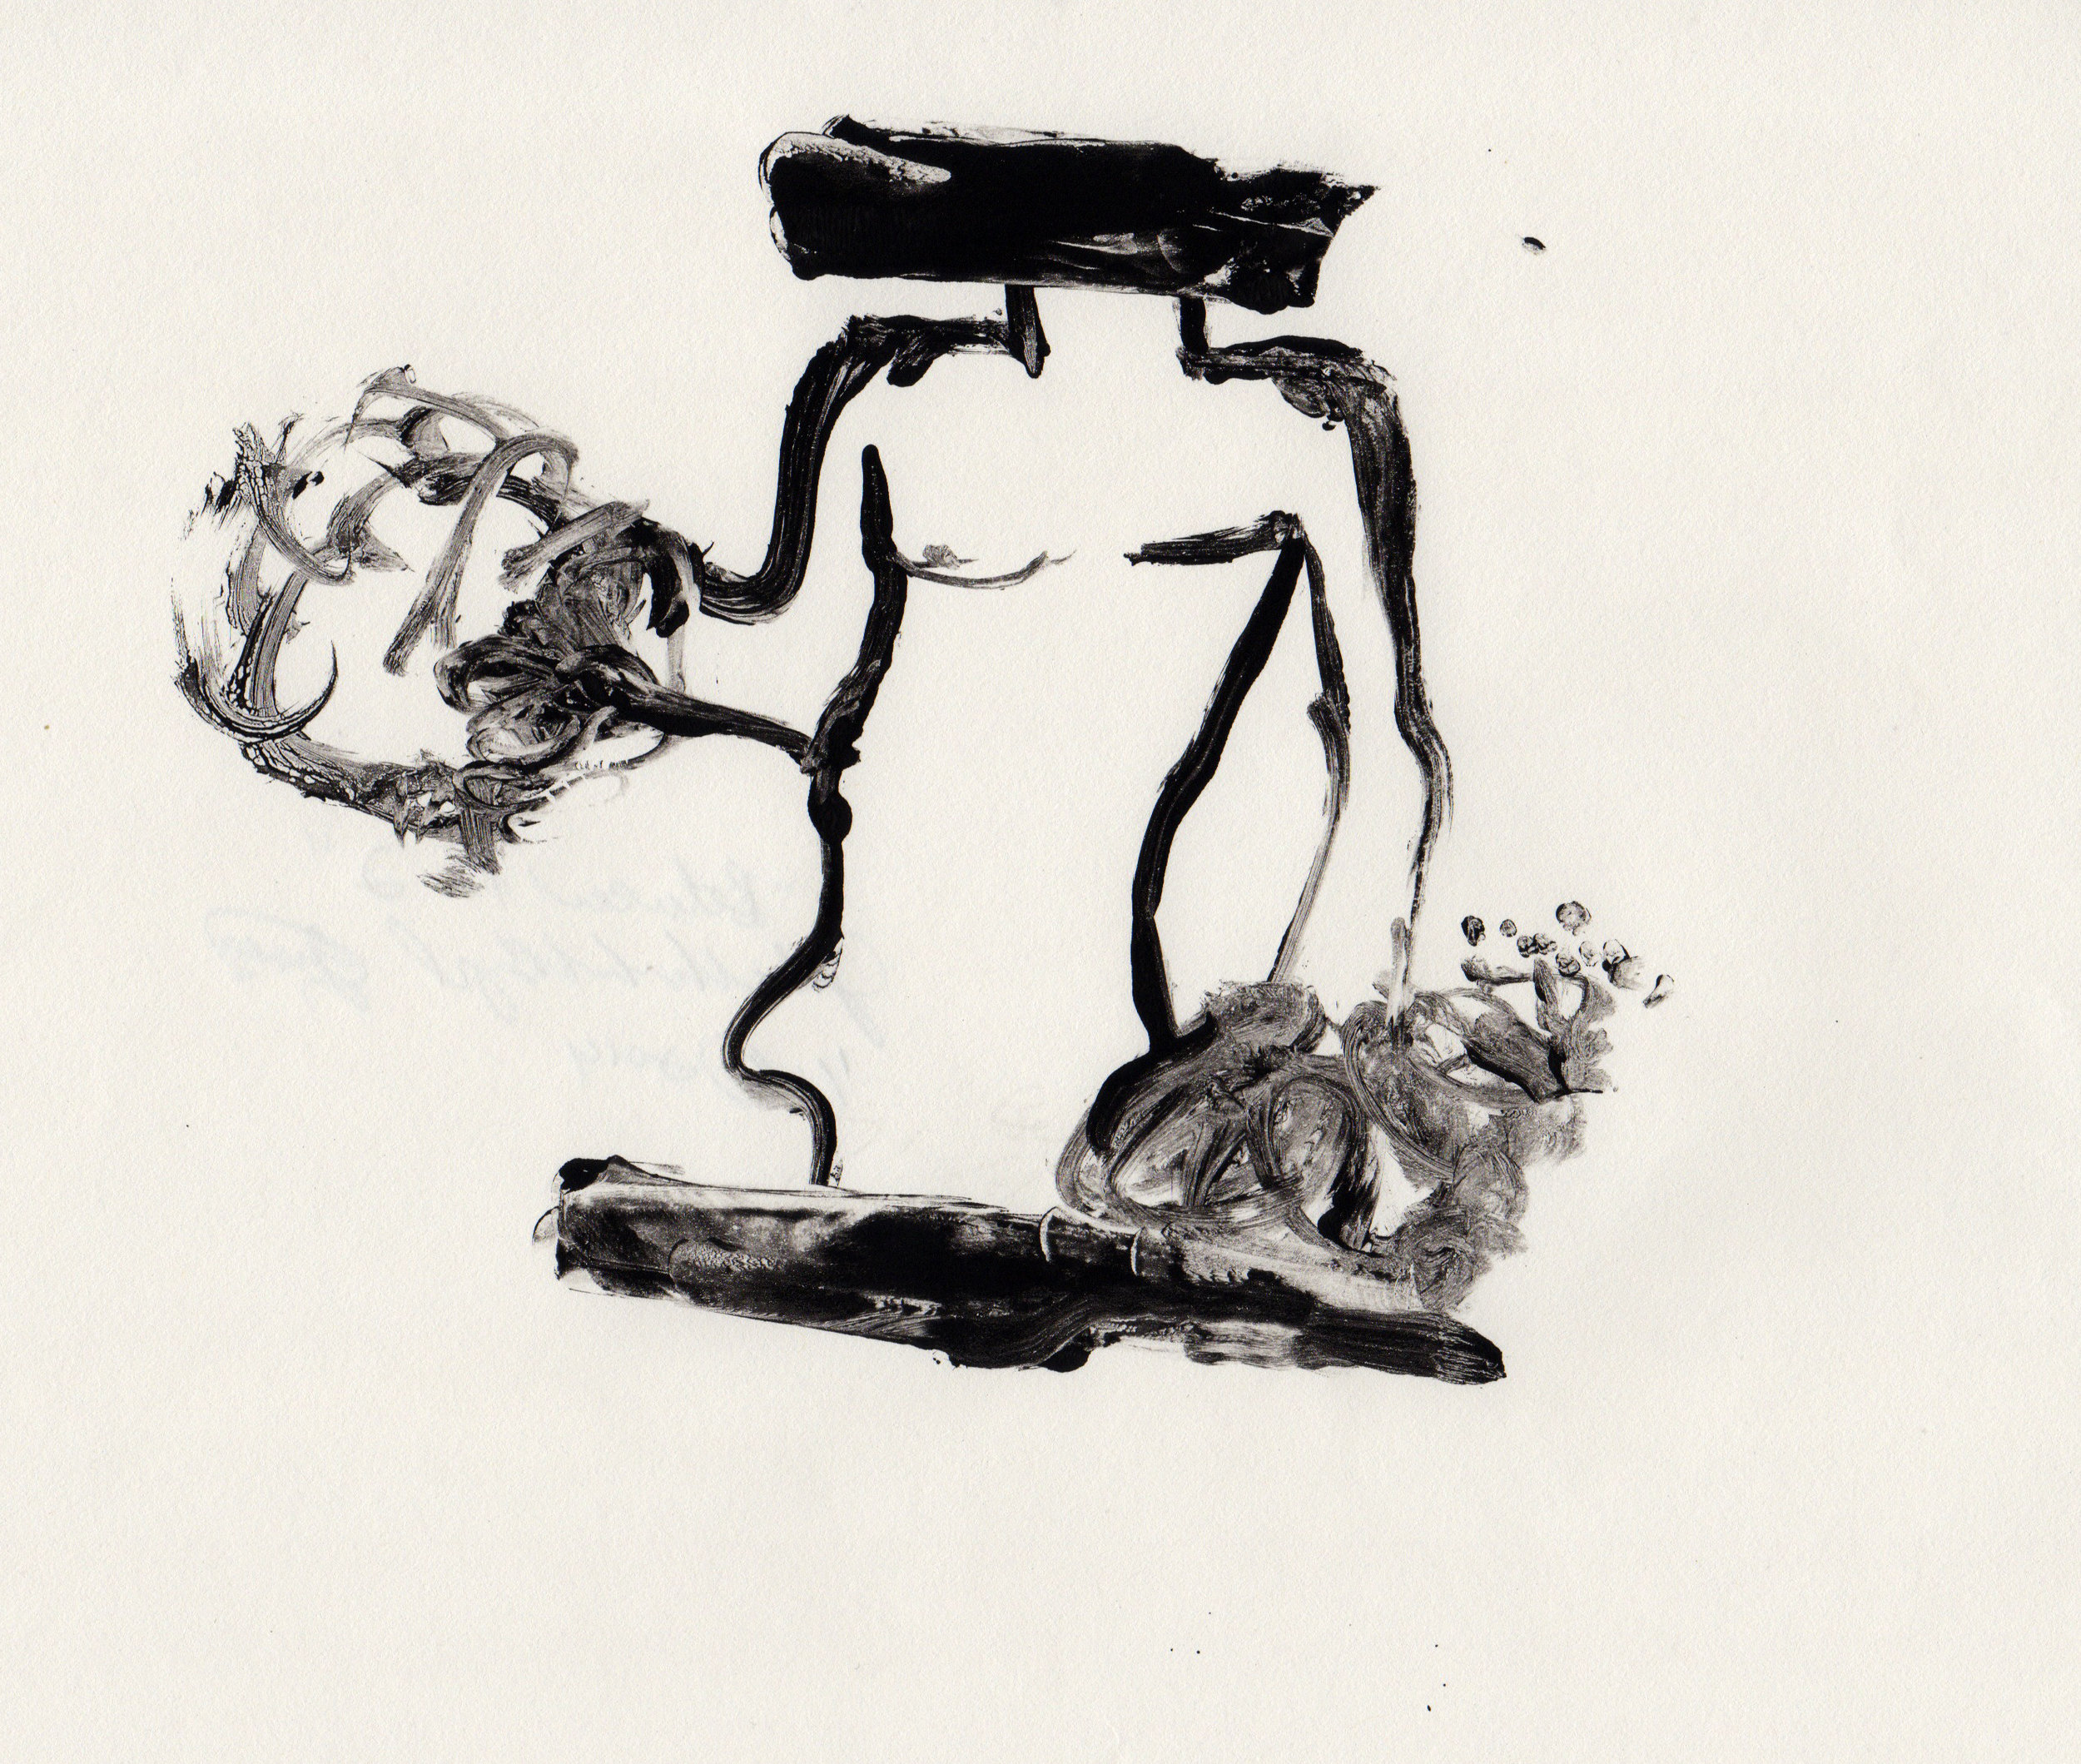 Between the Two, 2014, gelatin monotype, 10x9 inches